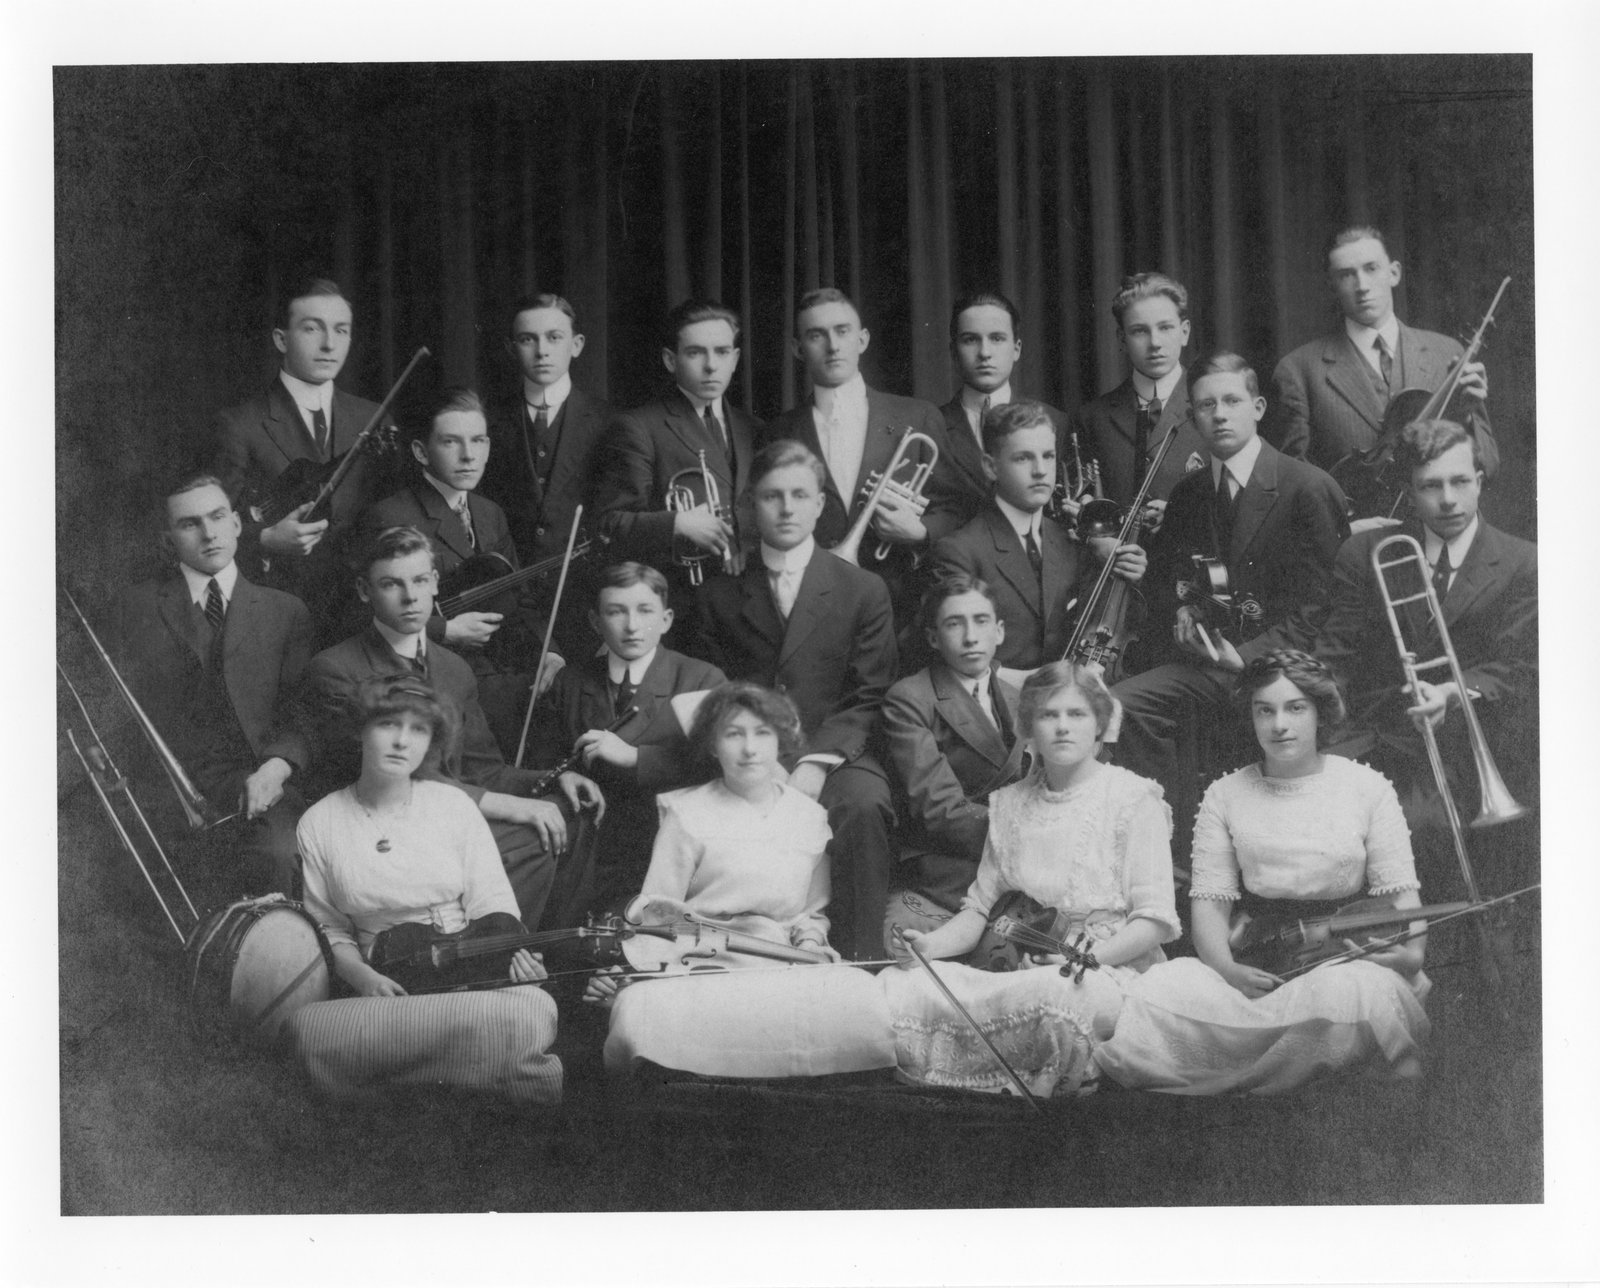 A co-ed group of musicians. The women in the front row play only stringed instruments. <br>Courtesy the London Public Library.